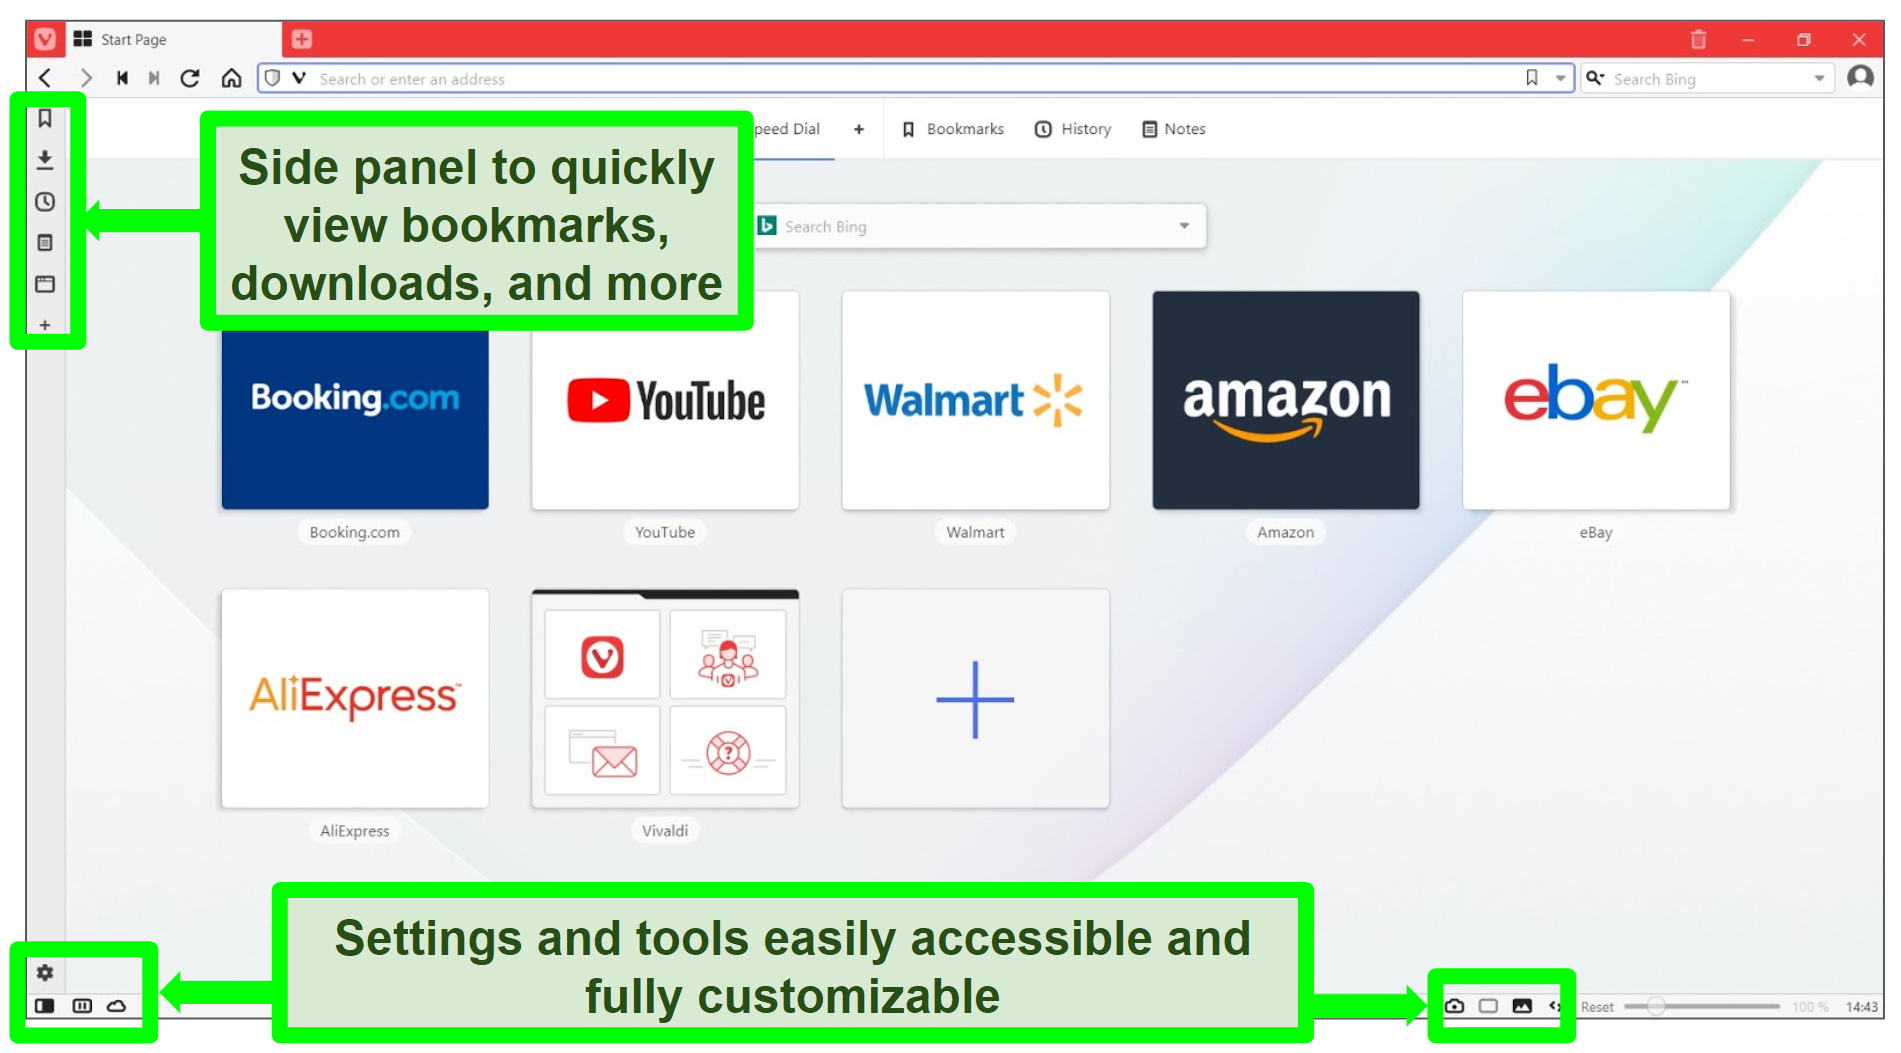 Screenshot of Vivaldi homepage with some features highlighted and annotated